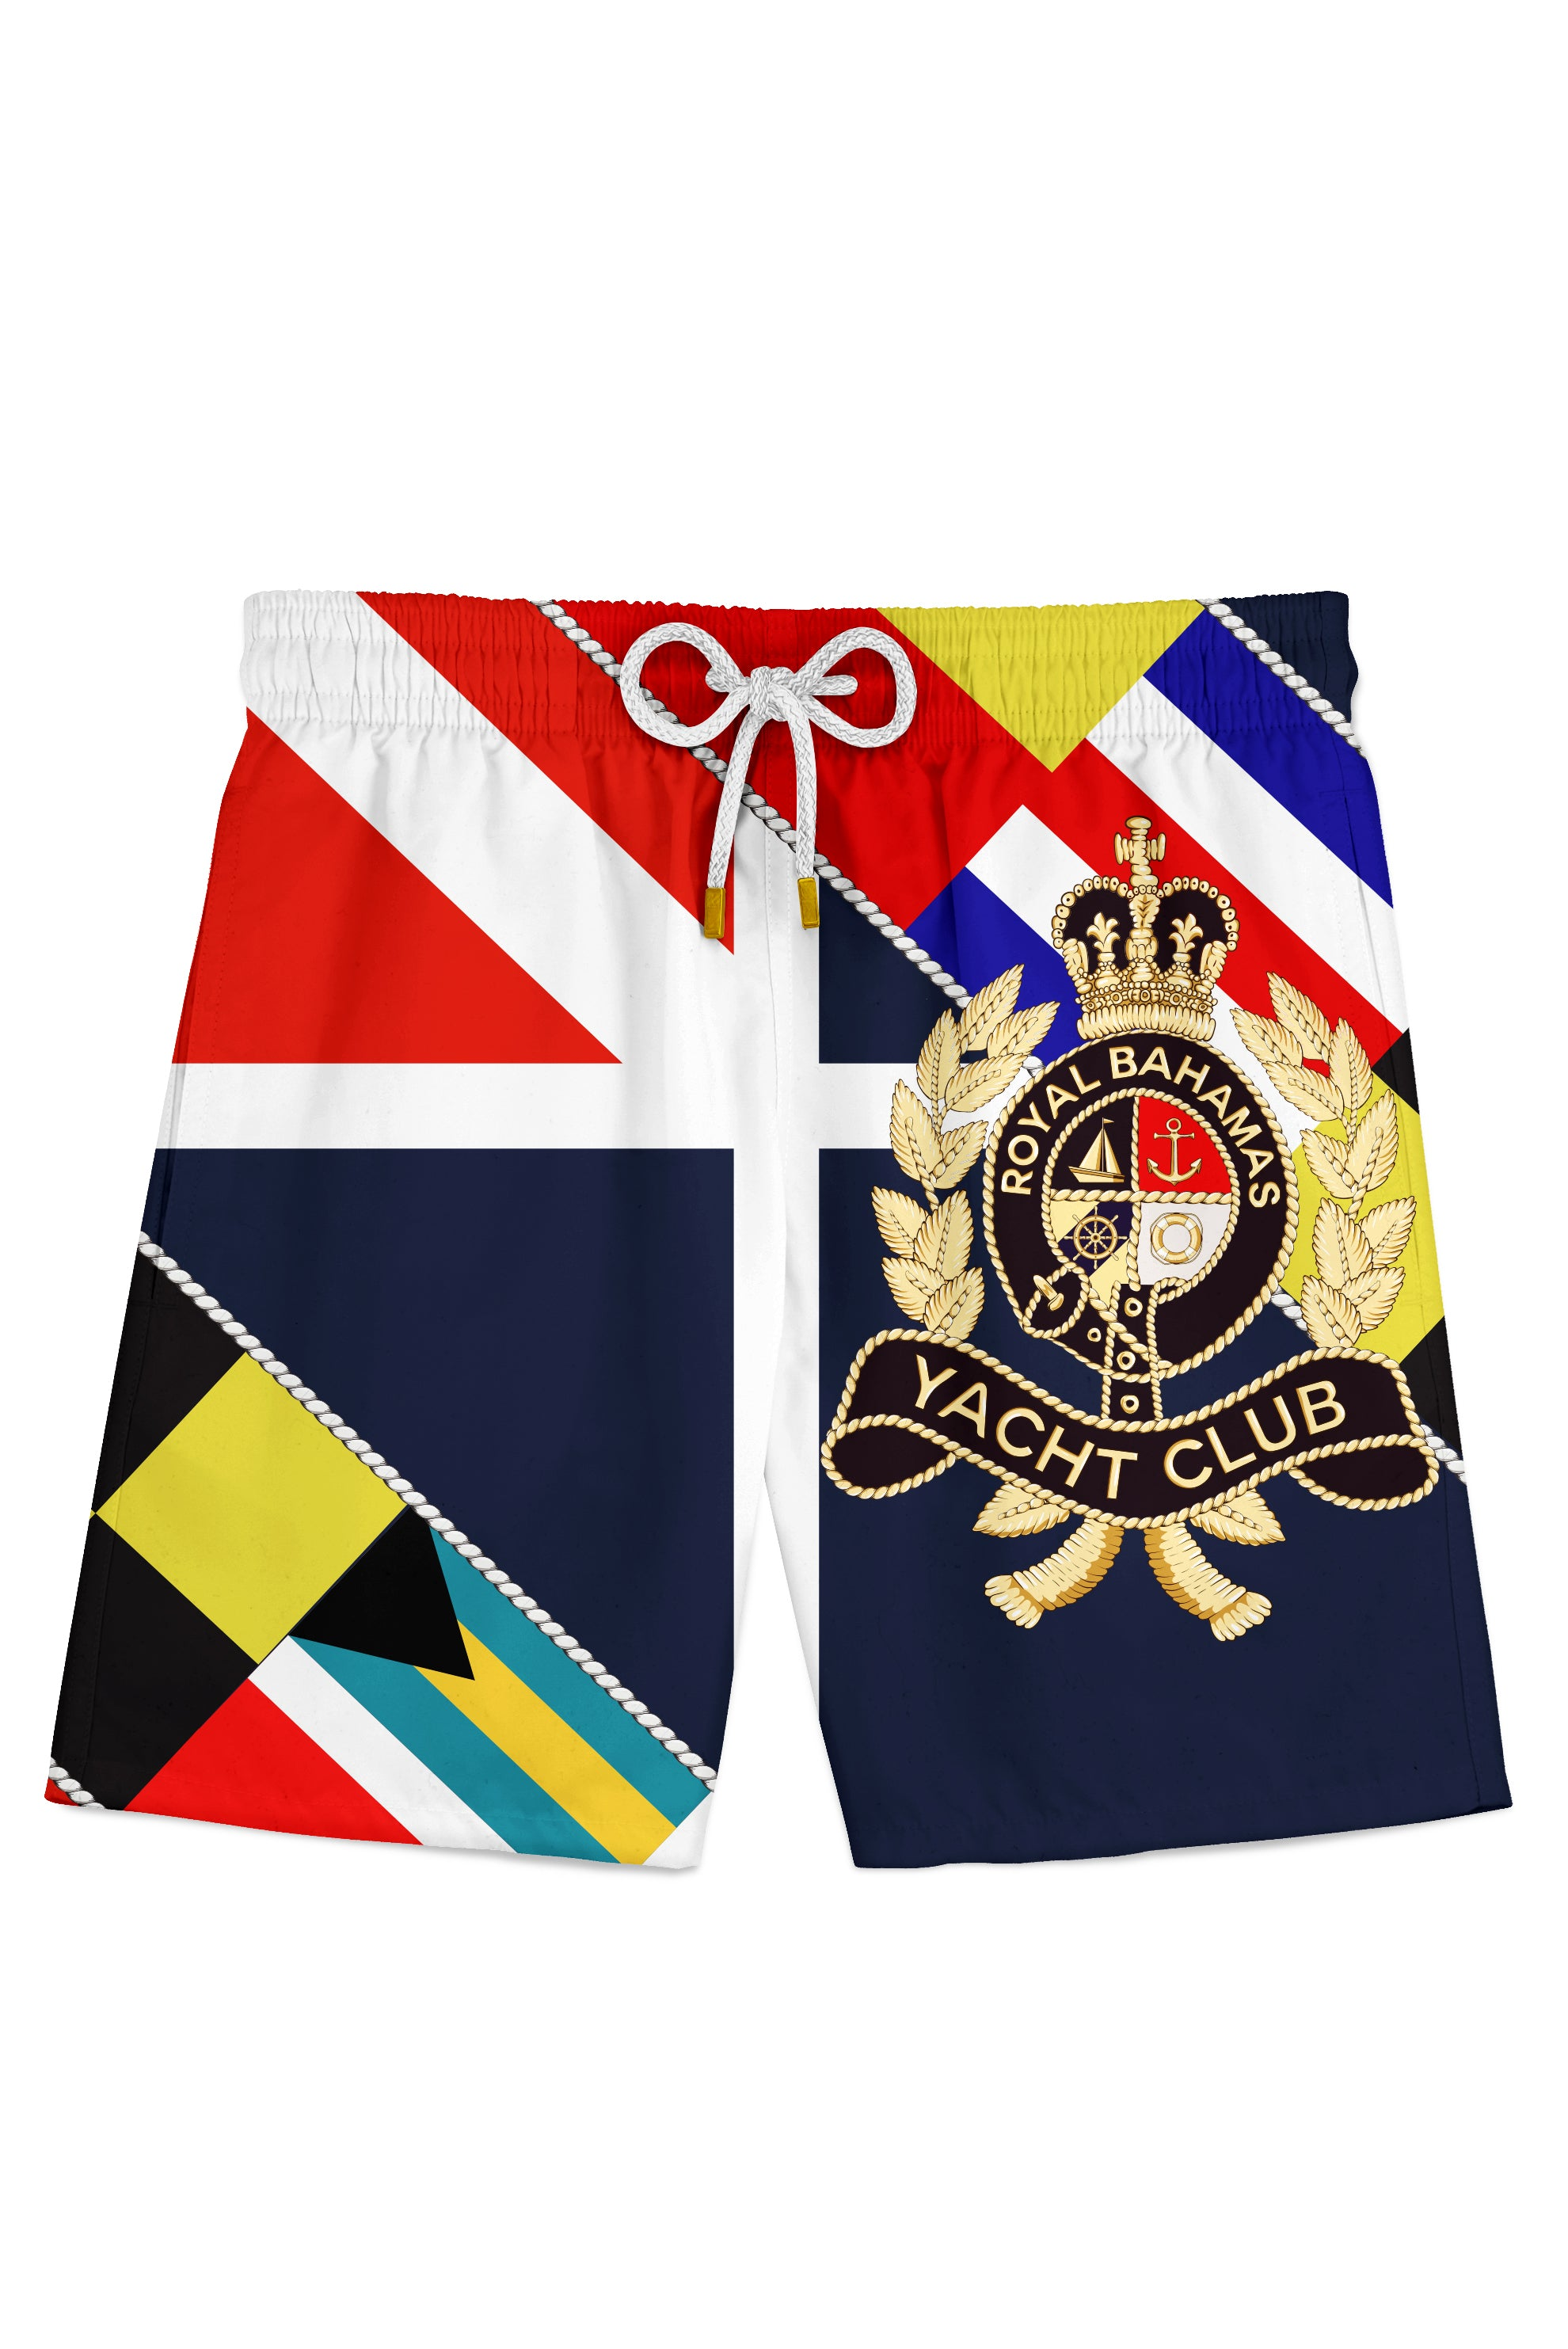 THE YACHT CLUB SHORTS